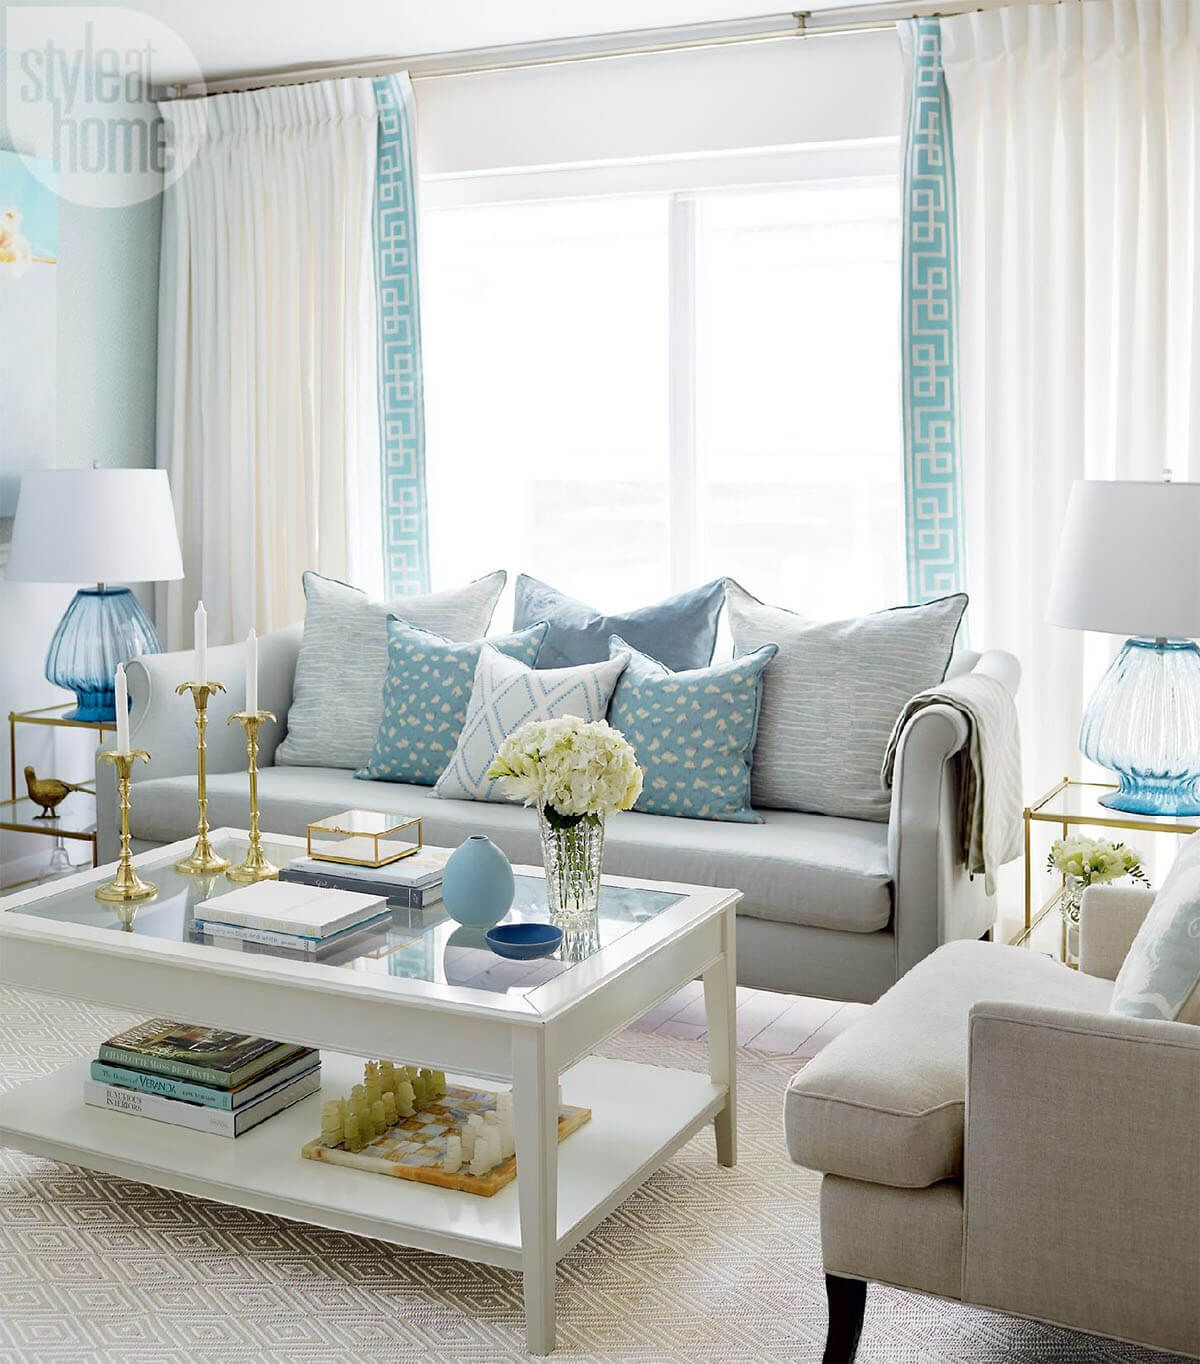 Photo of Blue Accents Against Warm Brown for a Summer Cottage Feel